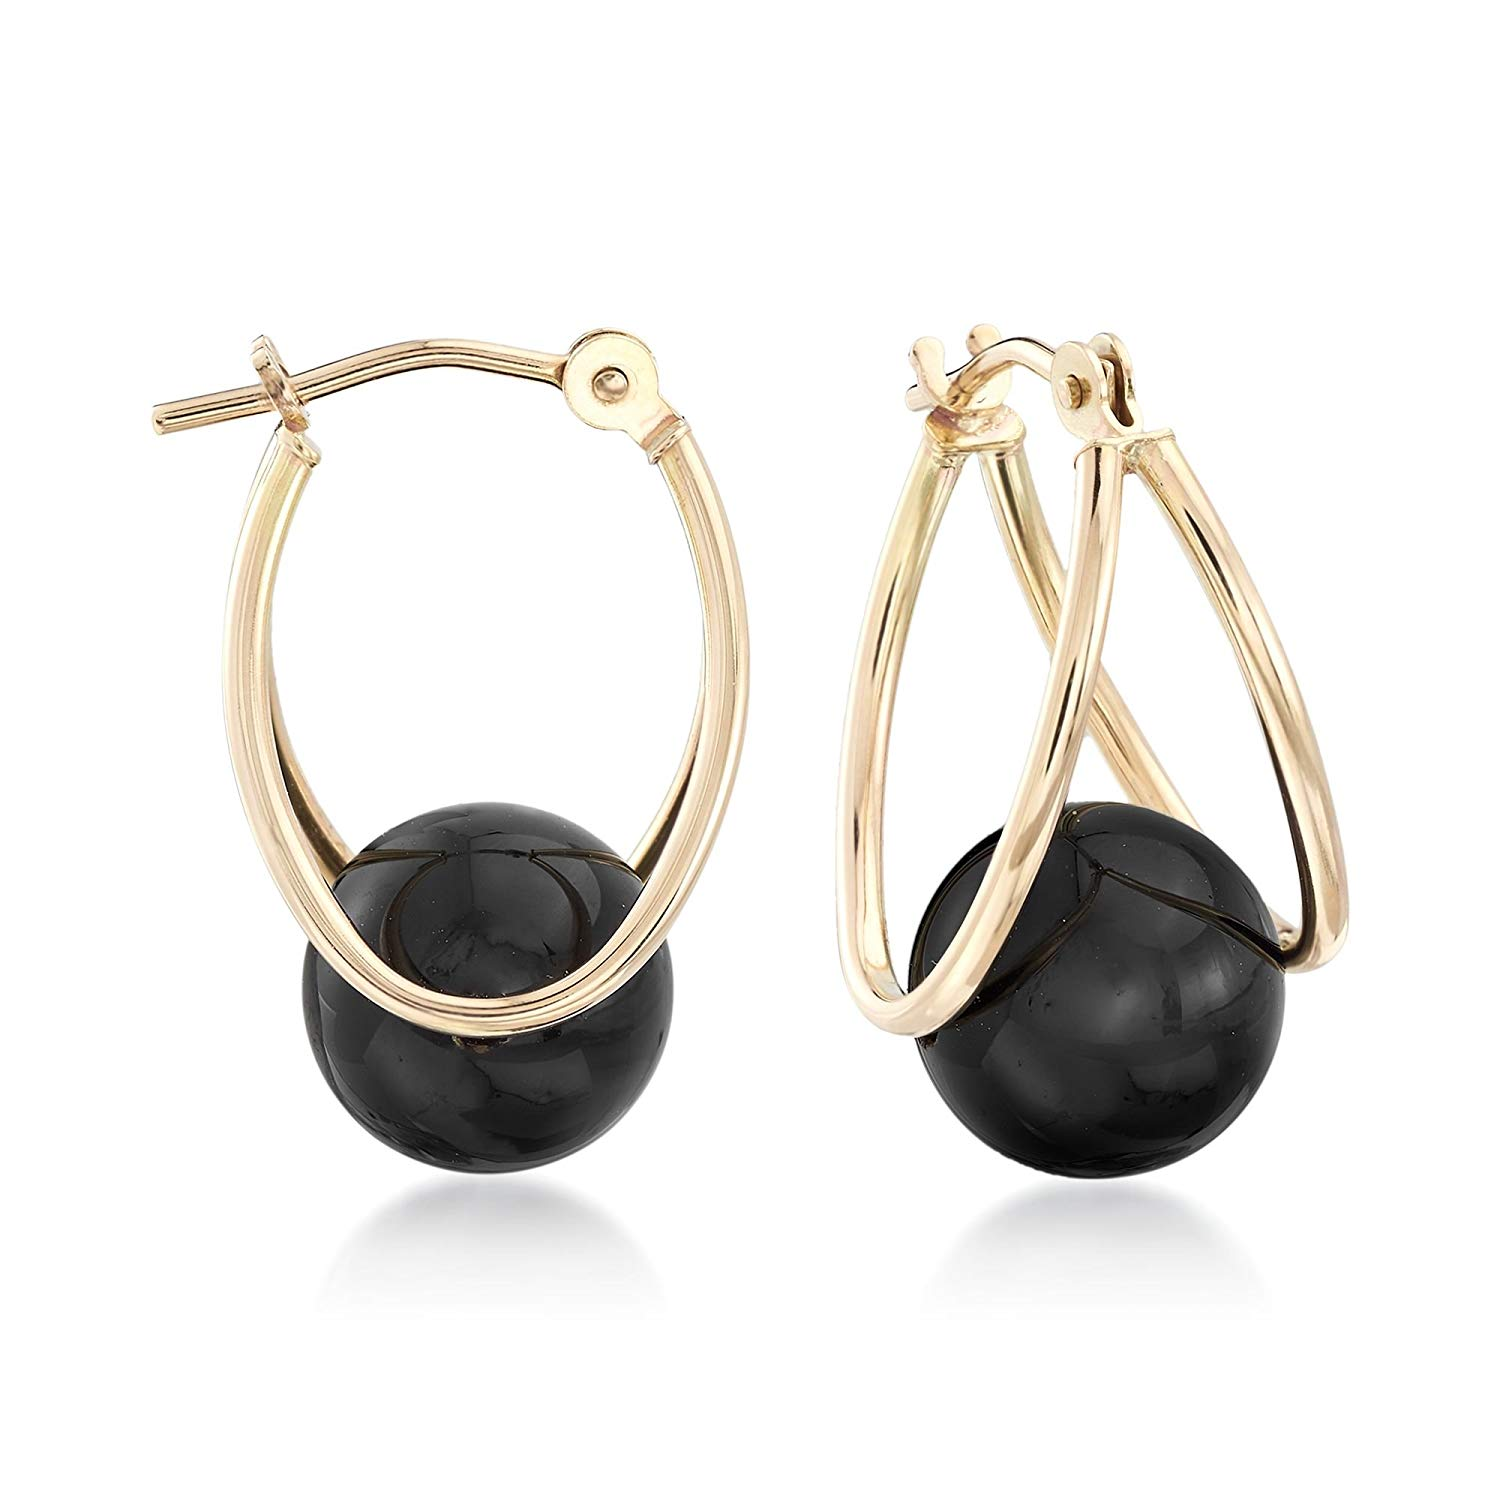 c2258a05b Get Quotations · Ross-Simons Black Onyx Double Hoop Earrings in 14kt Yellow  Gold